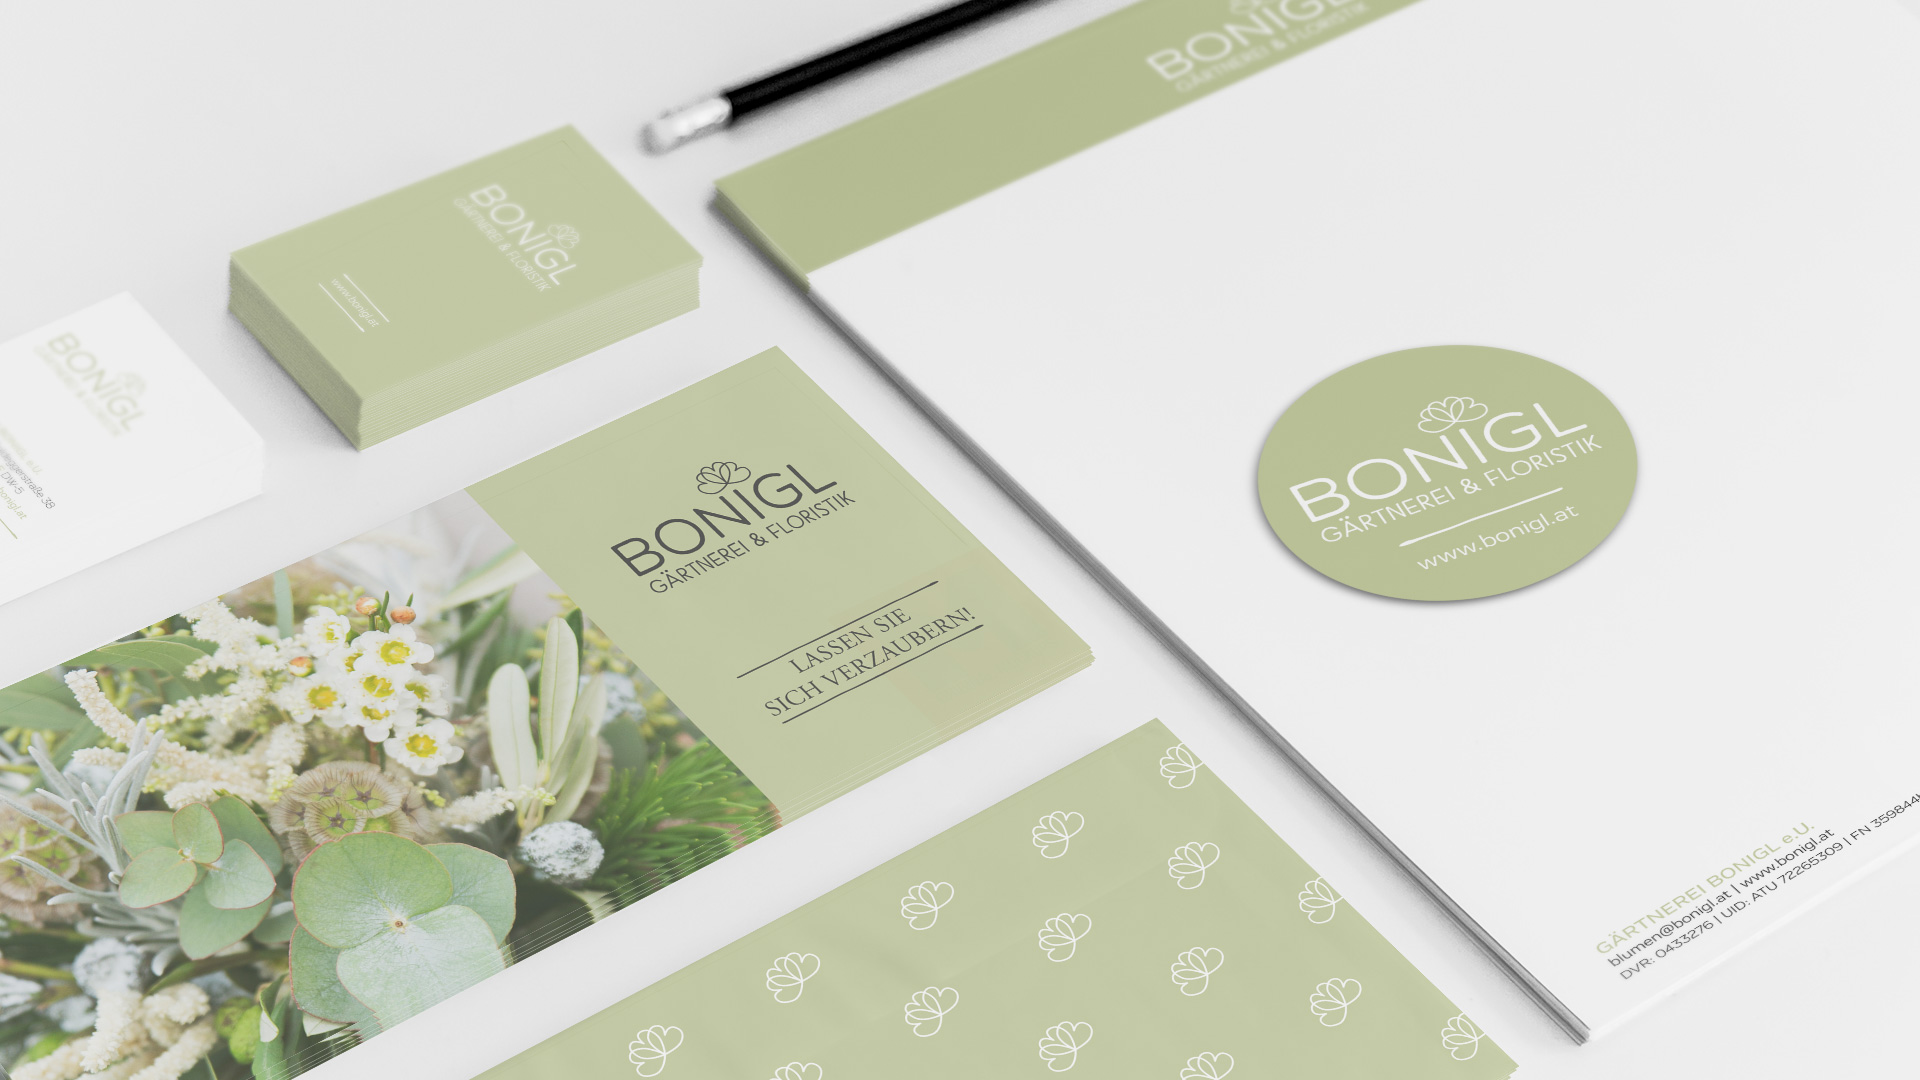 Bonigl Corporate Design